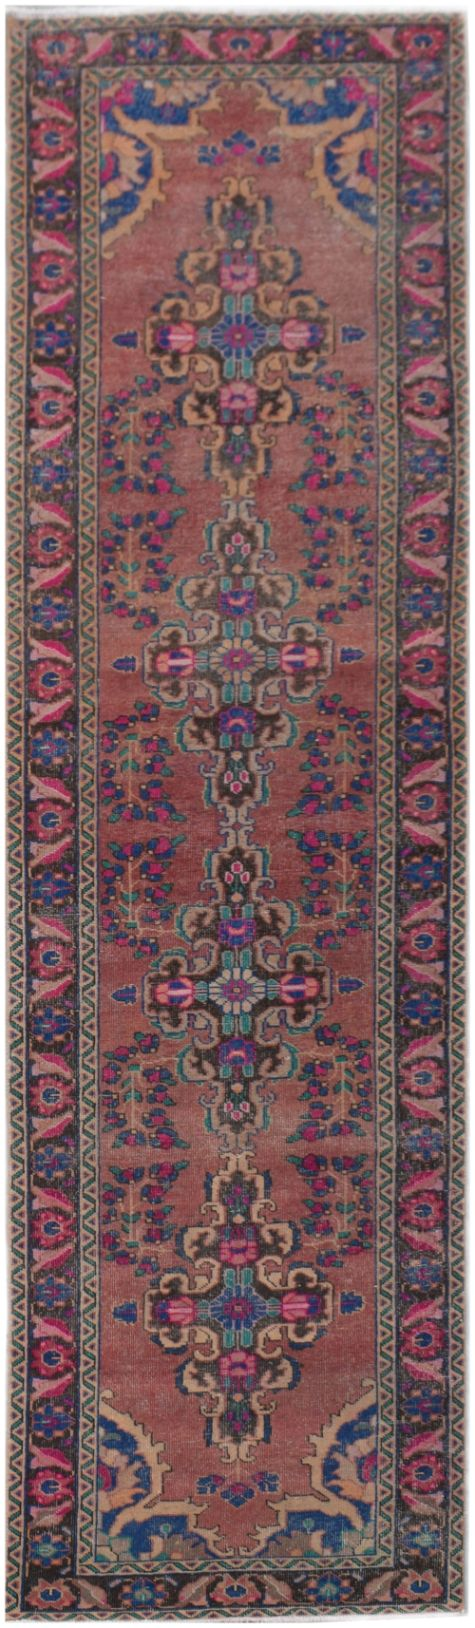 Handmade Tribal Abrash Collection Hallway Runner | 400 x 101 cm